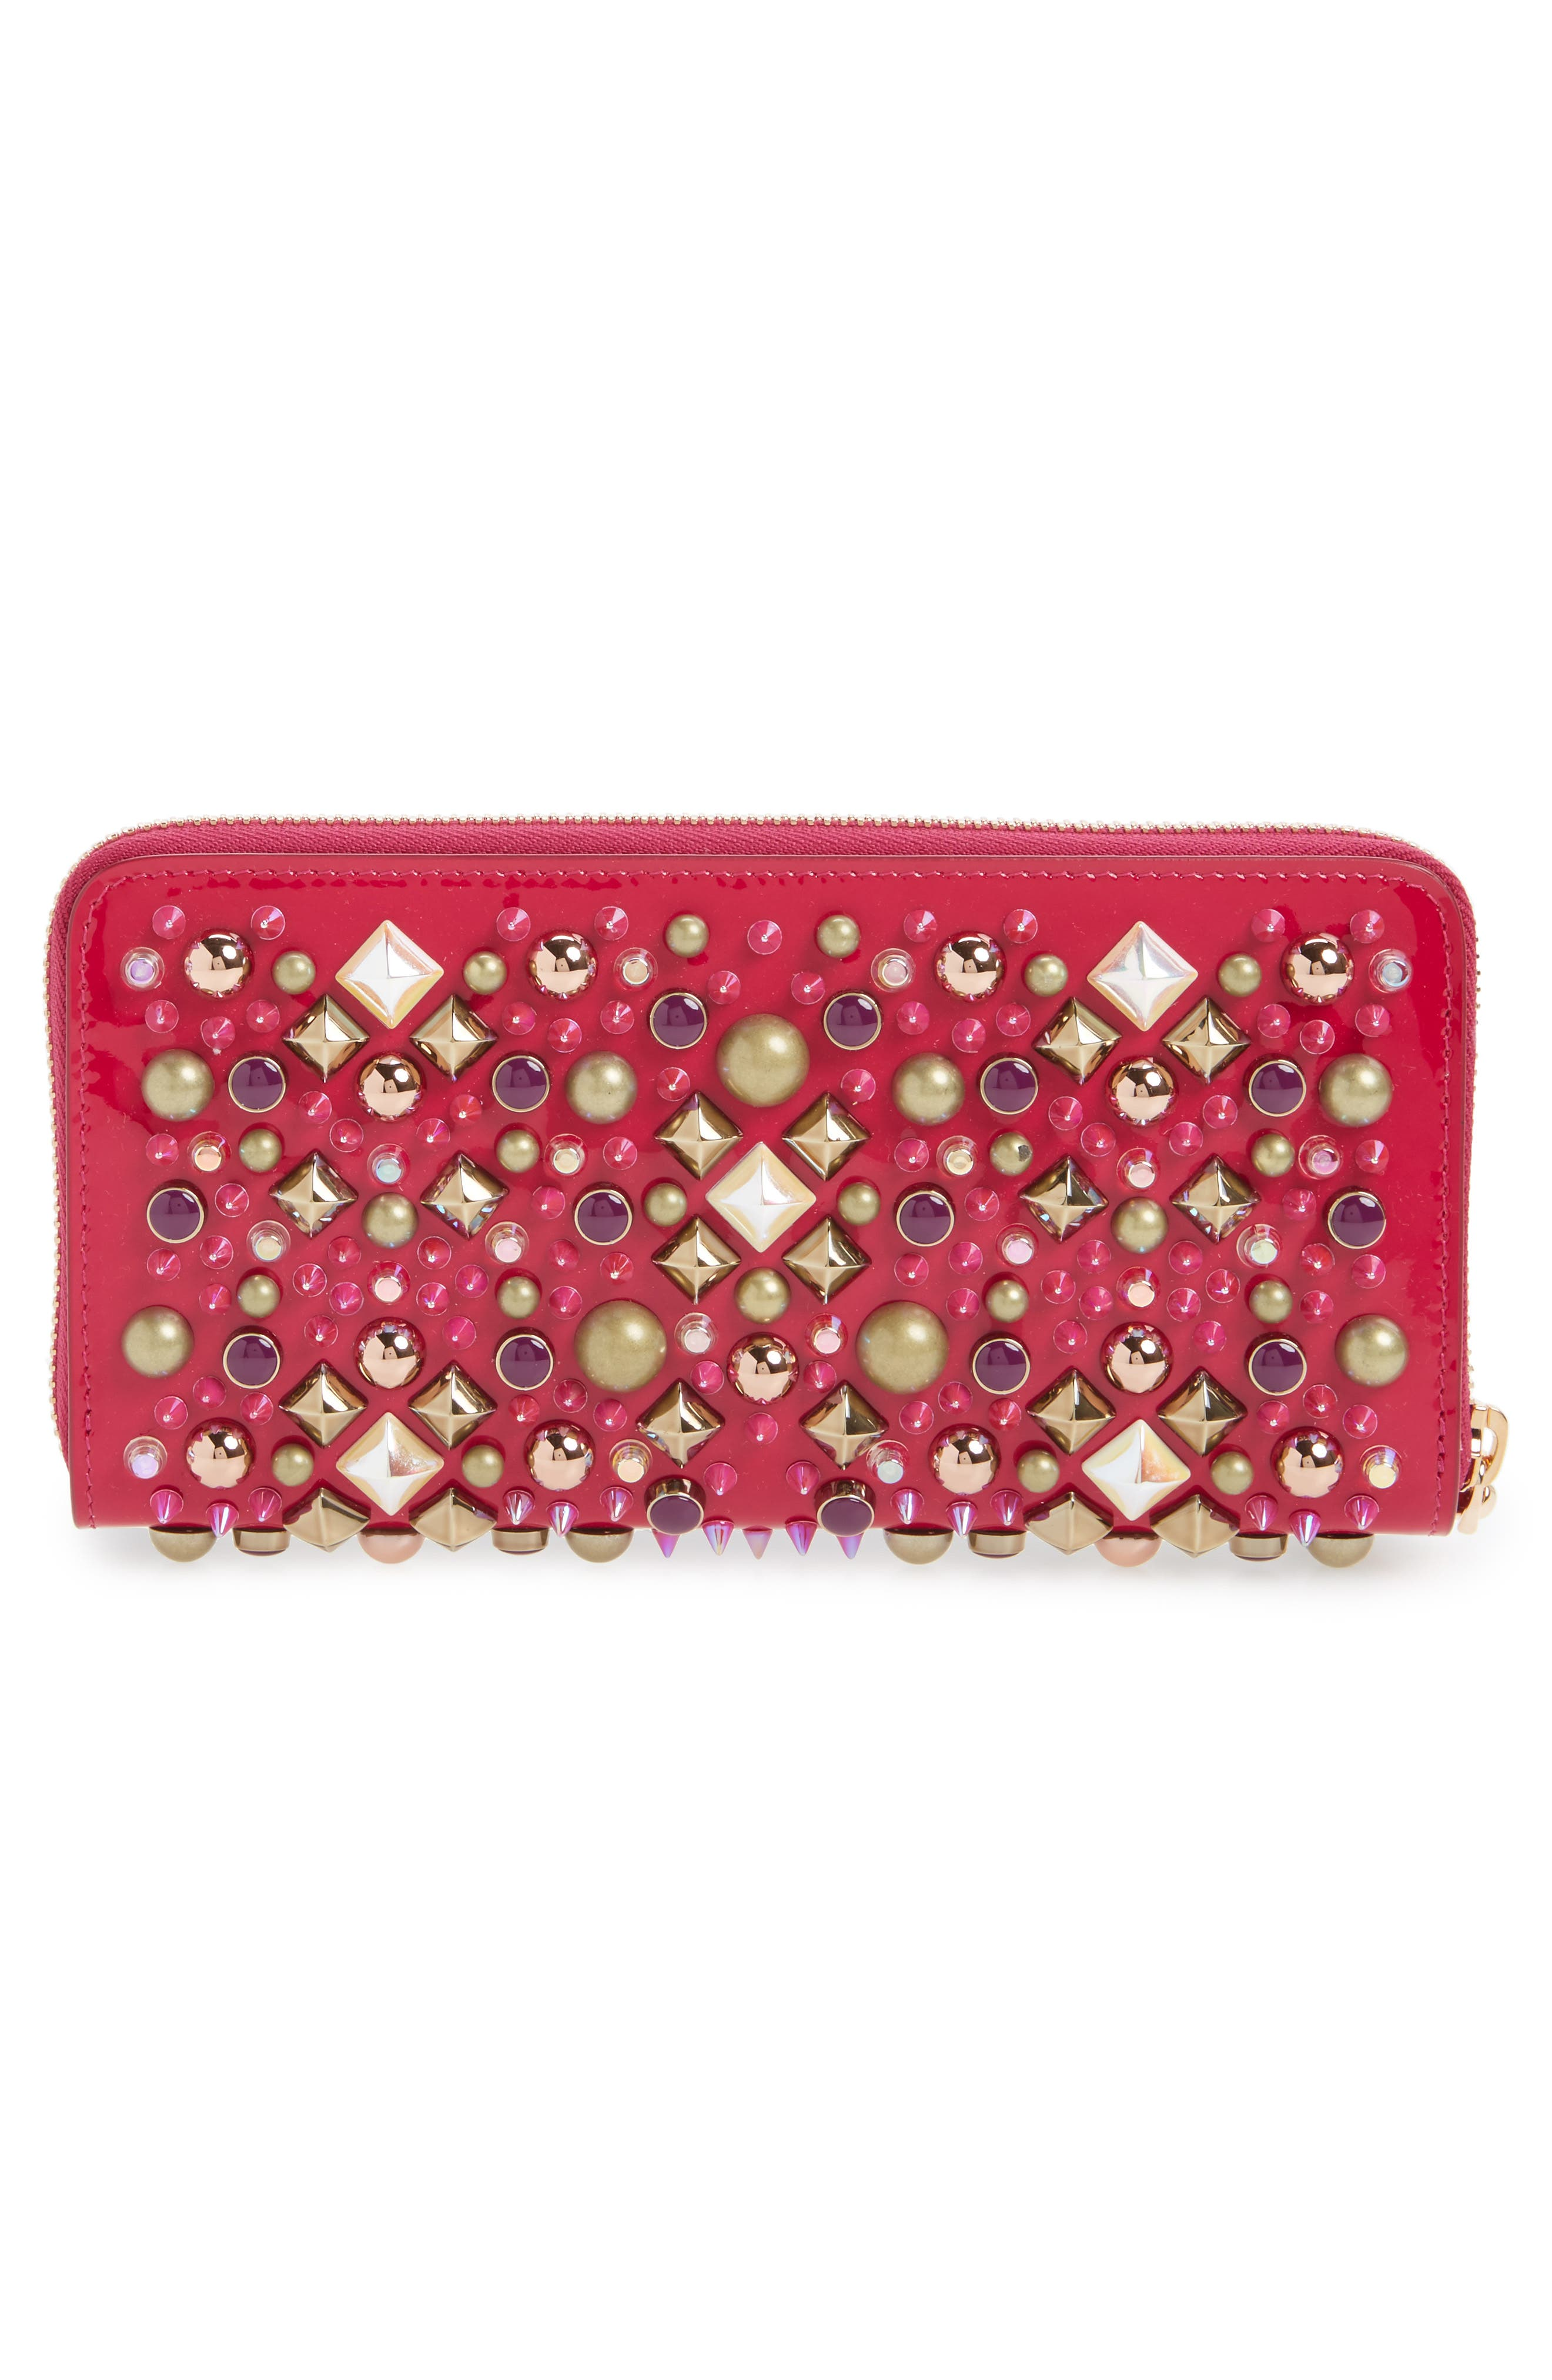 Panettone Spiked Patent Leather Wallet,                             Alternate thumbnail 3, color,                             693